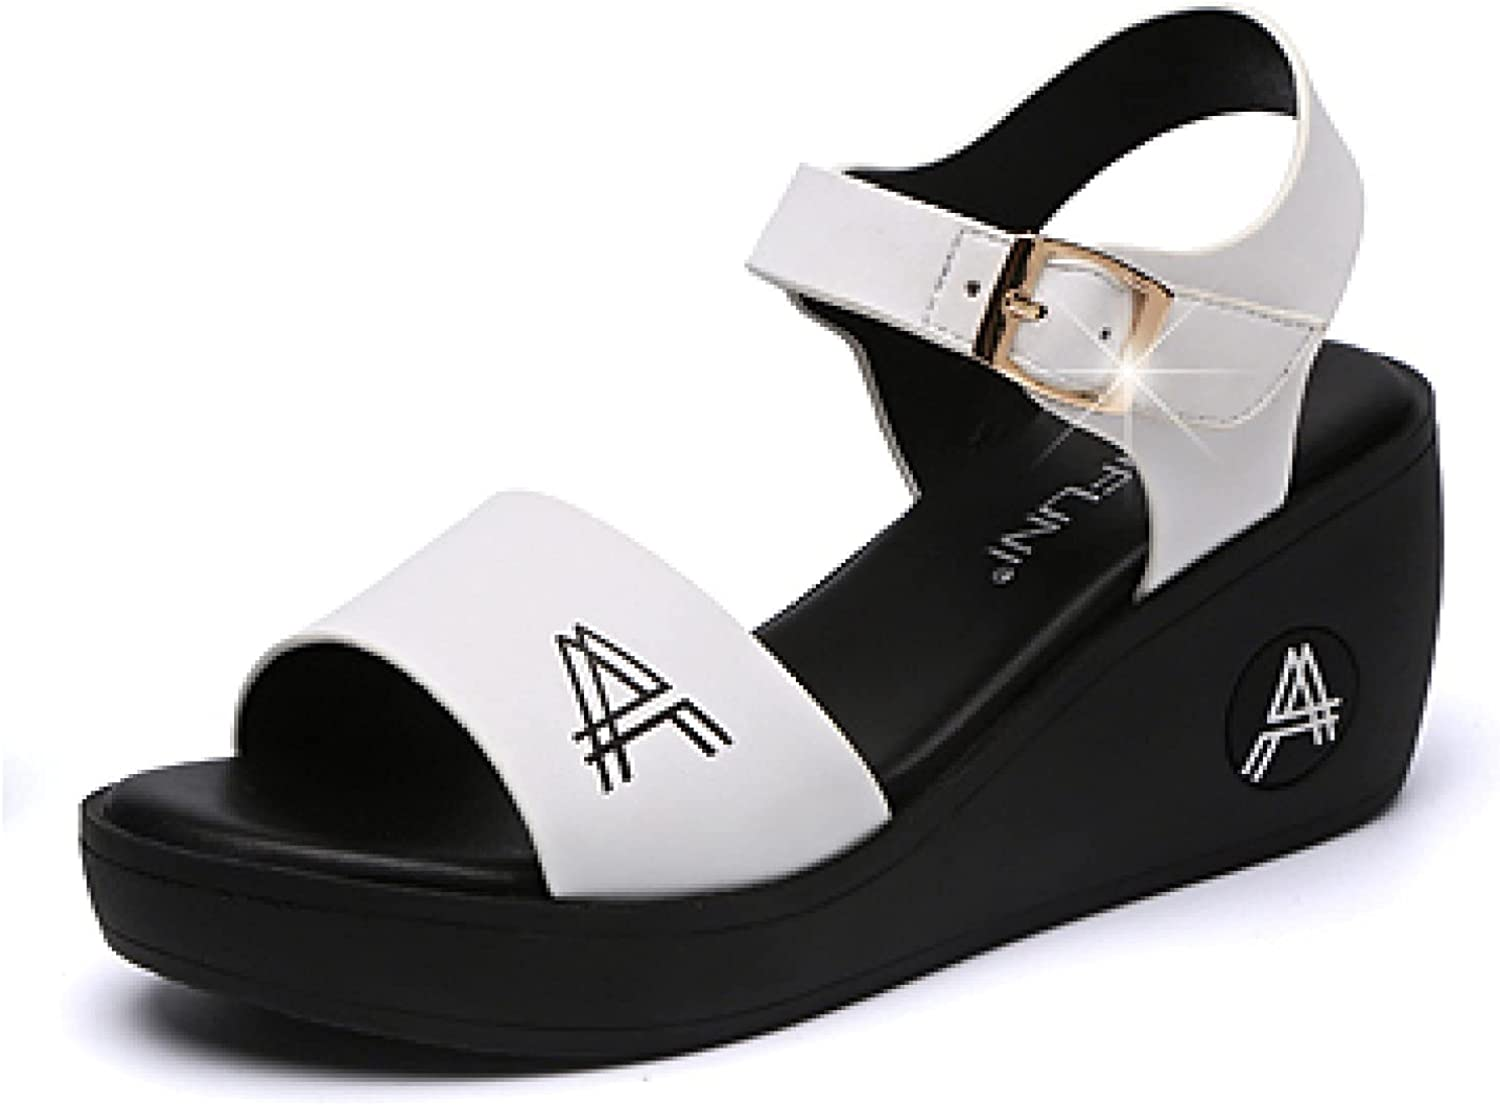 Womens low-pricing Wedges Sandal Open Toe Leather Breathable Ankle Vintage Max 62% OFF S